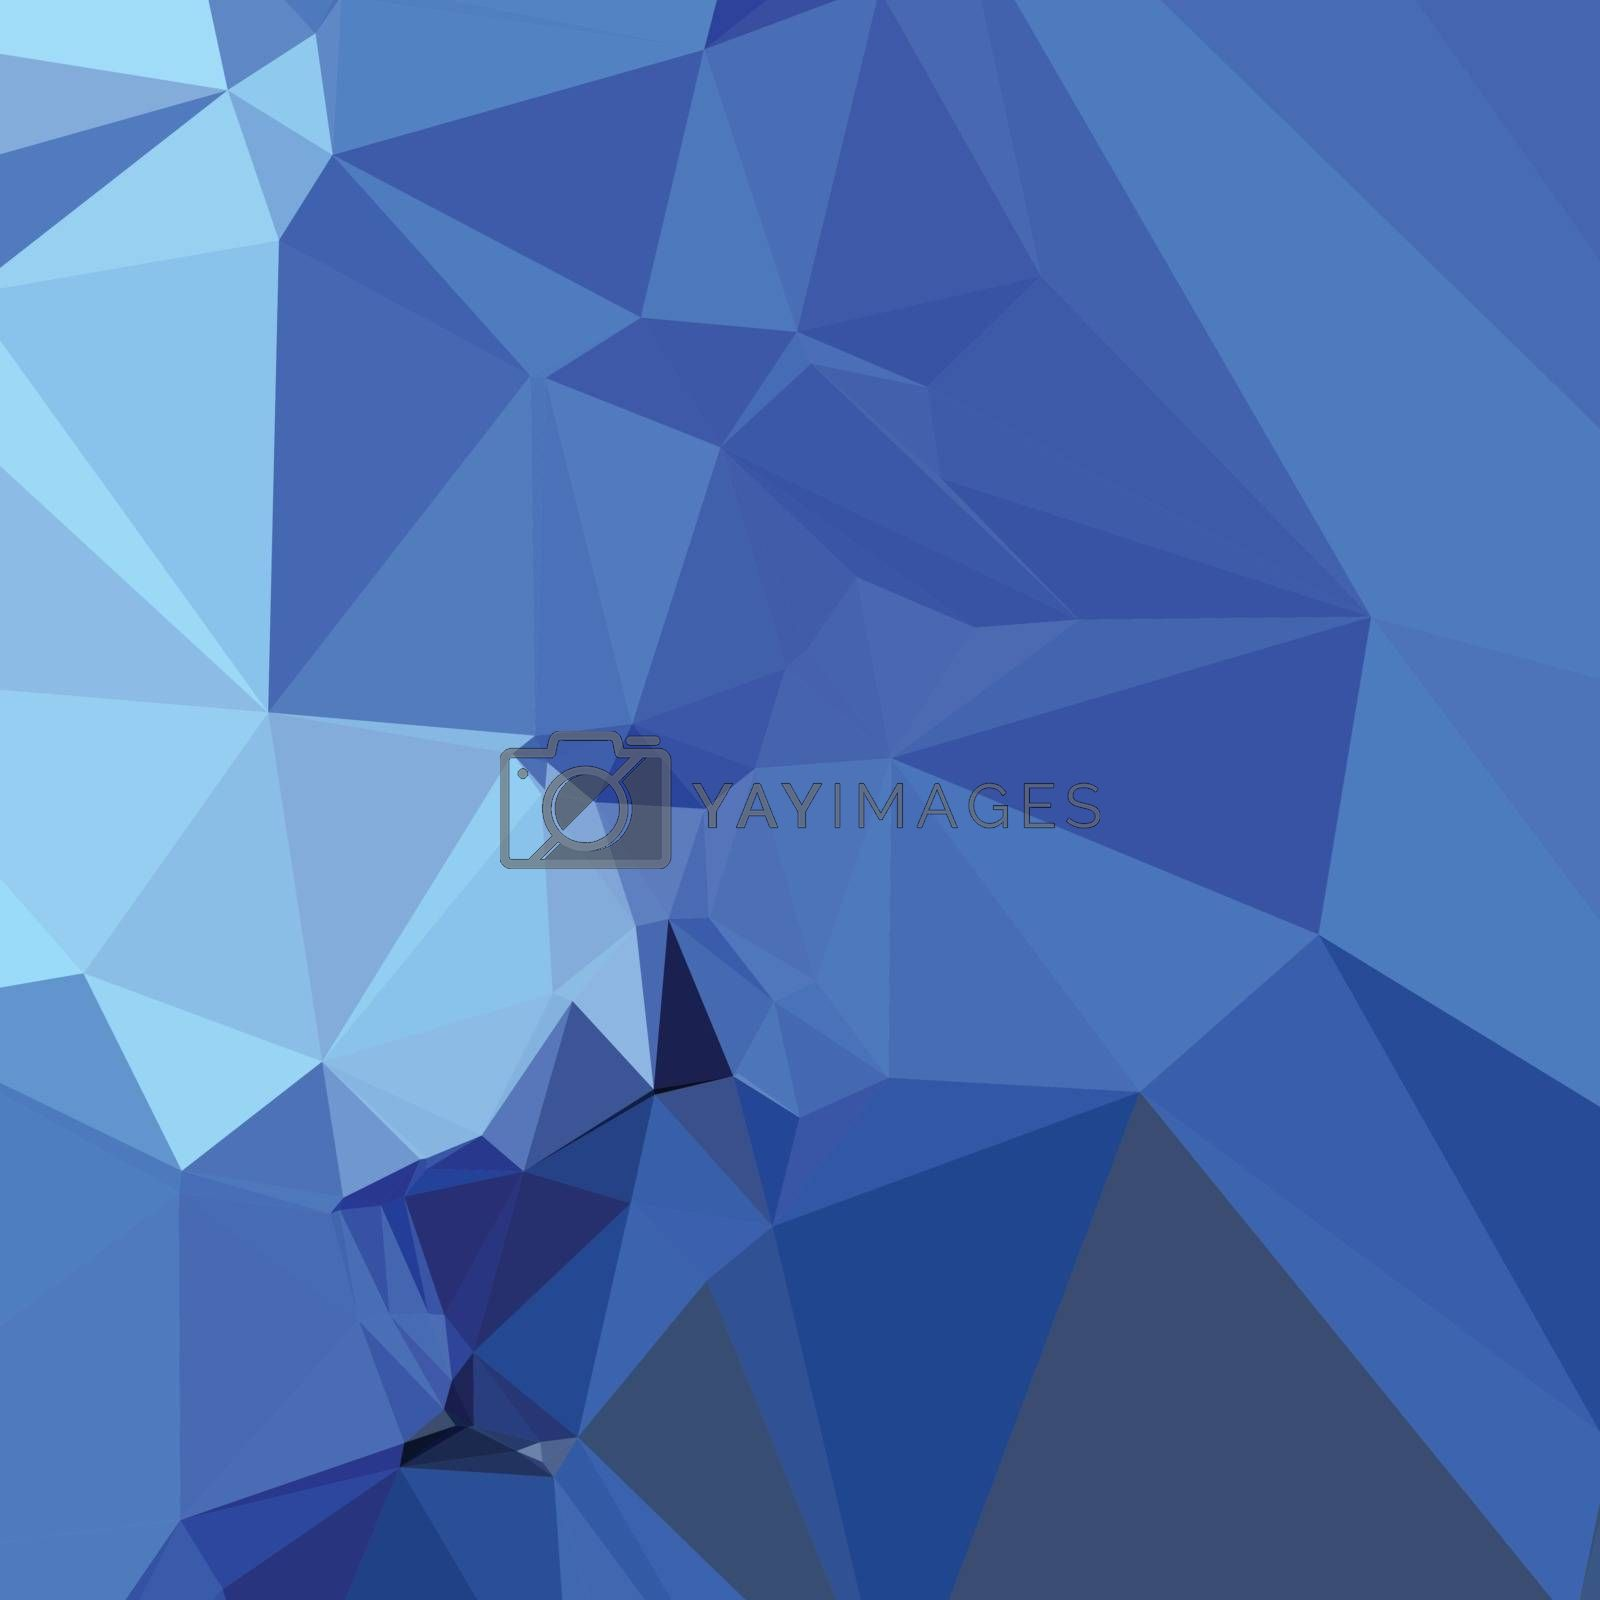 Low polygon style illustration of a brandeis blue abstract geometric background.